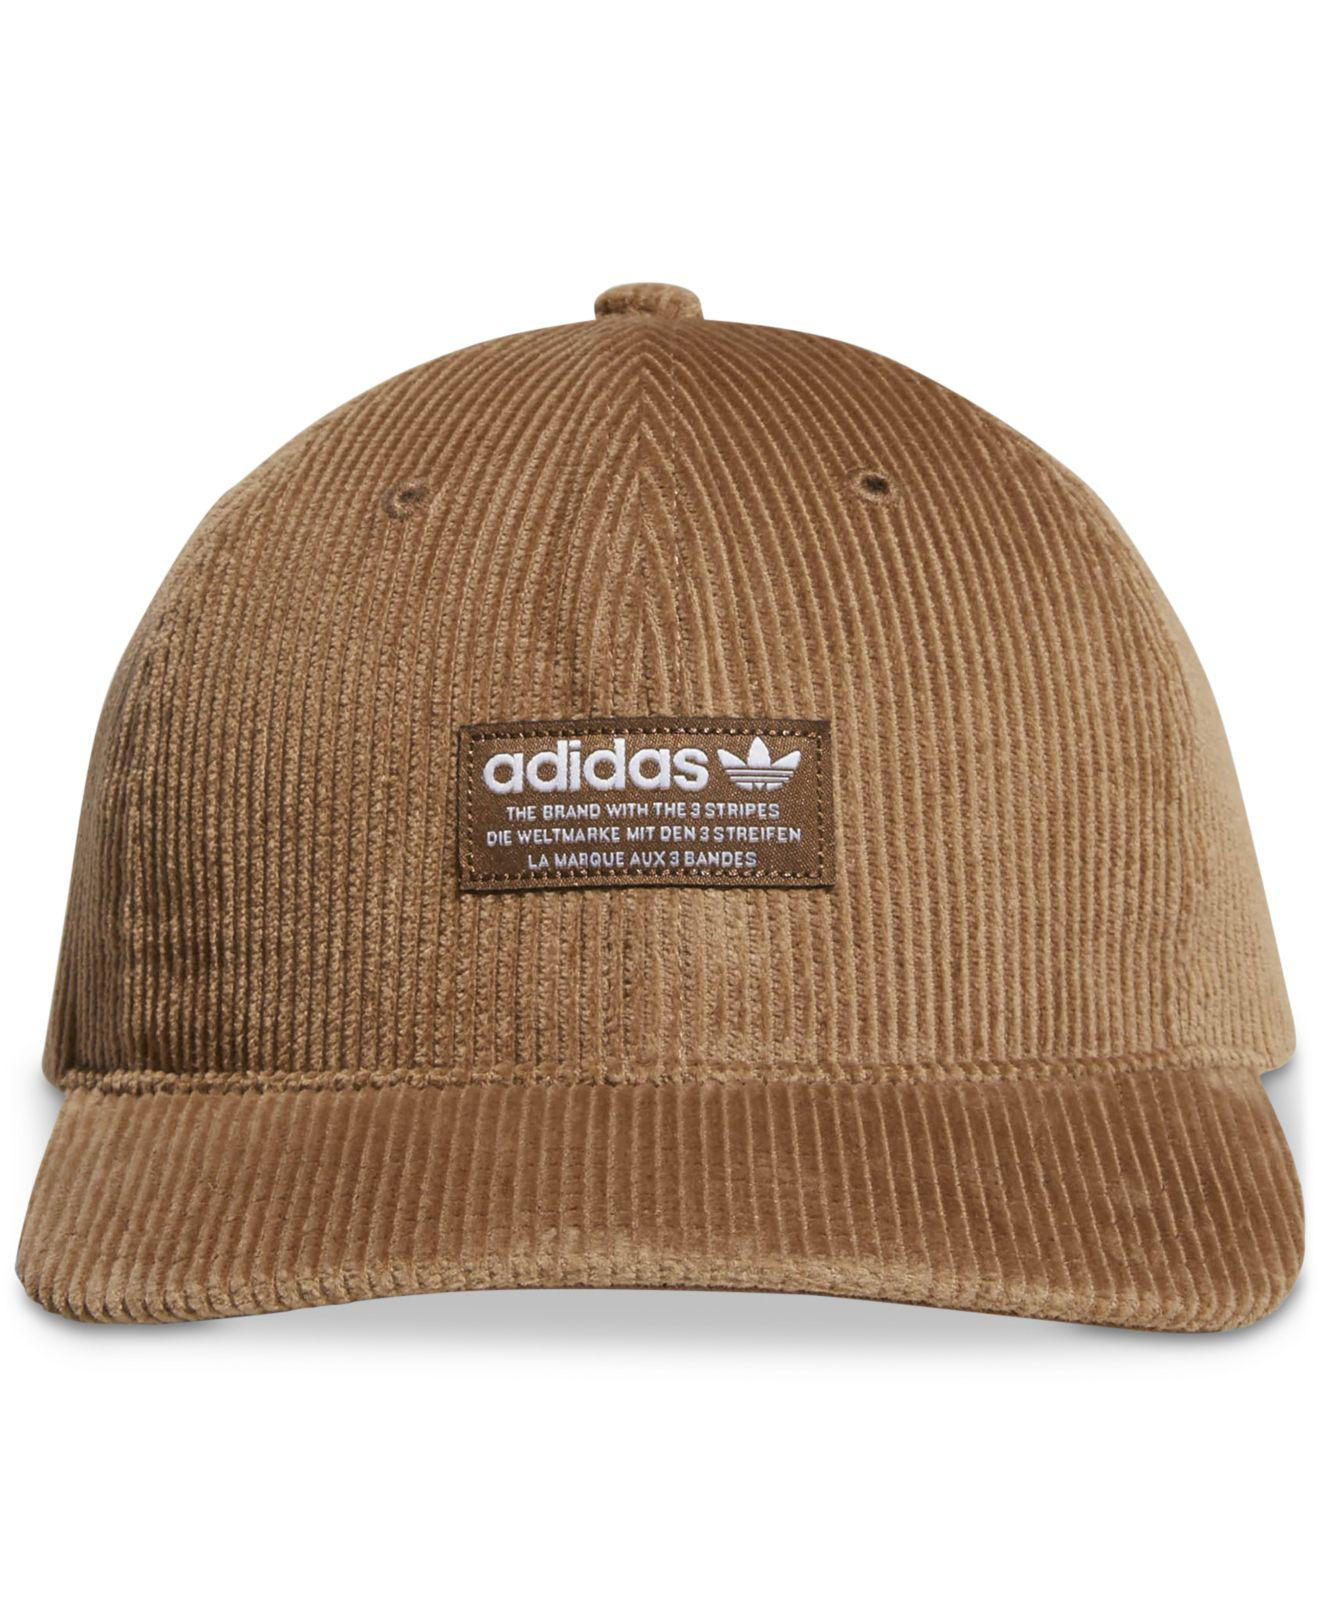 Lyst - adidas Originals Corduroy Logo Hat in Brown for Men f9821bbe9e8